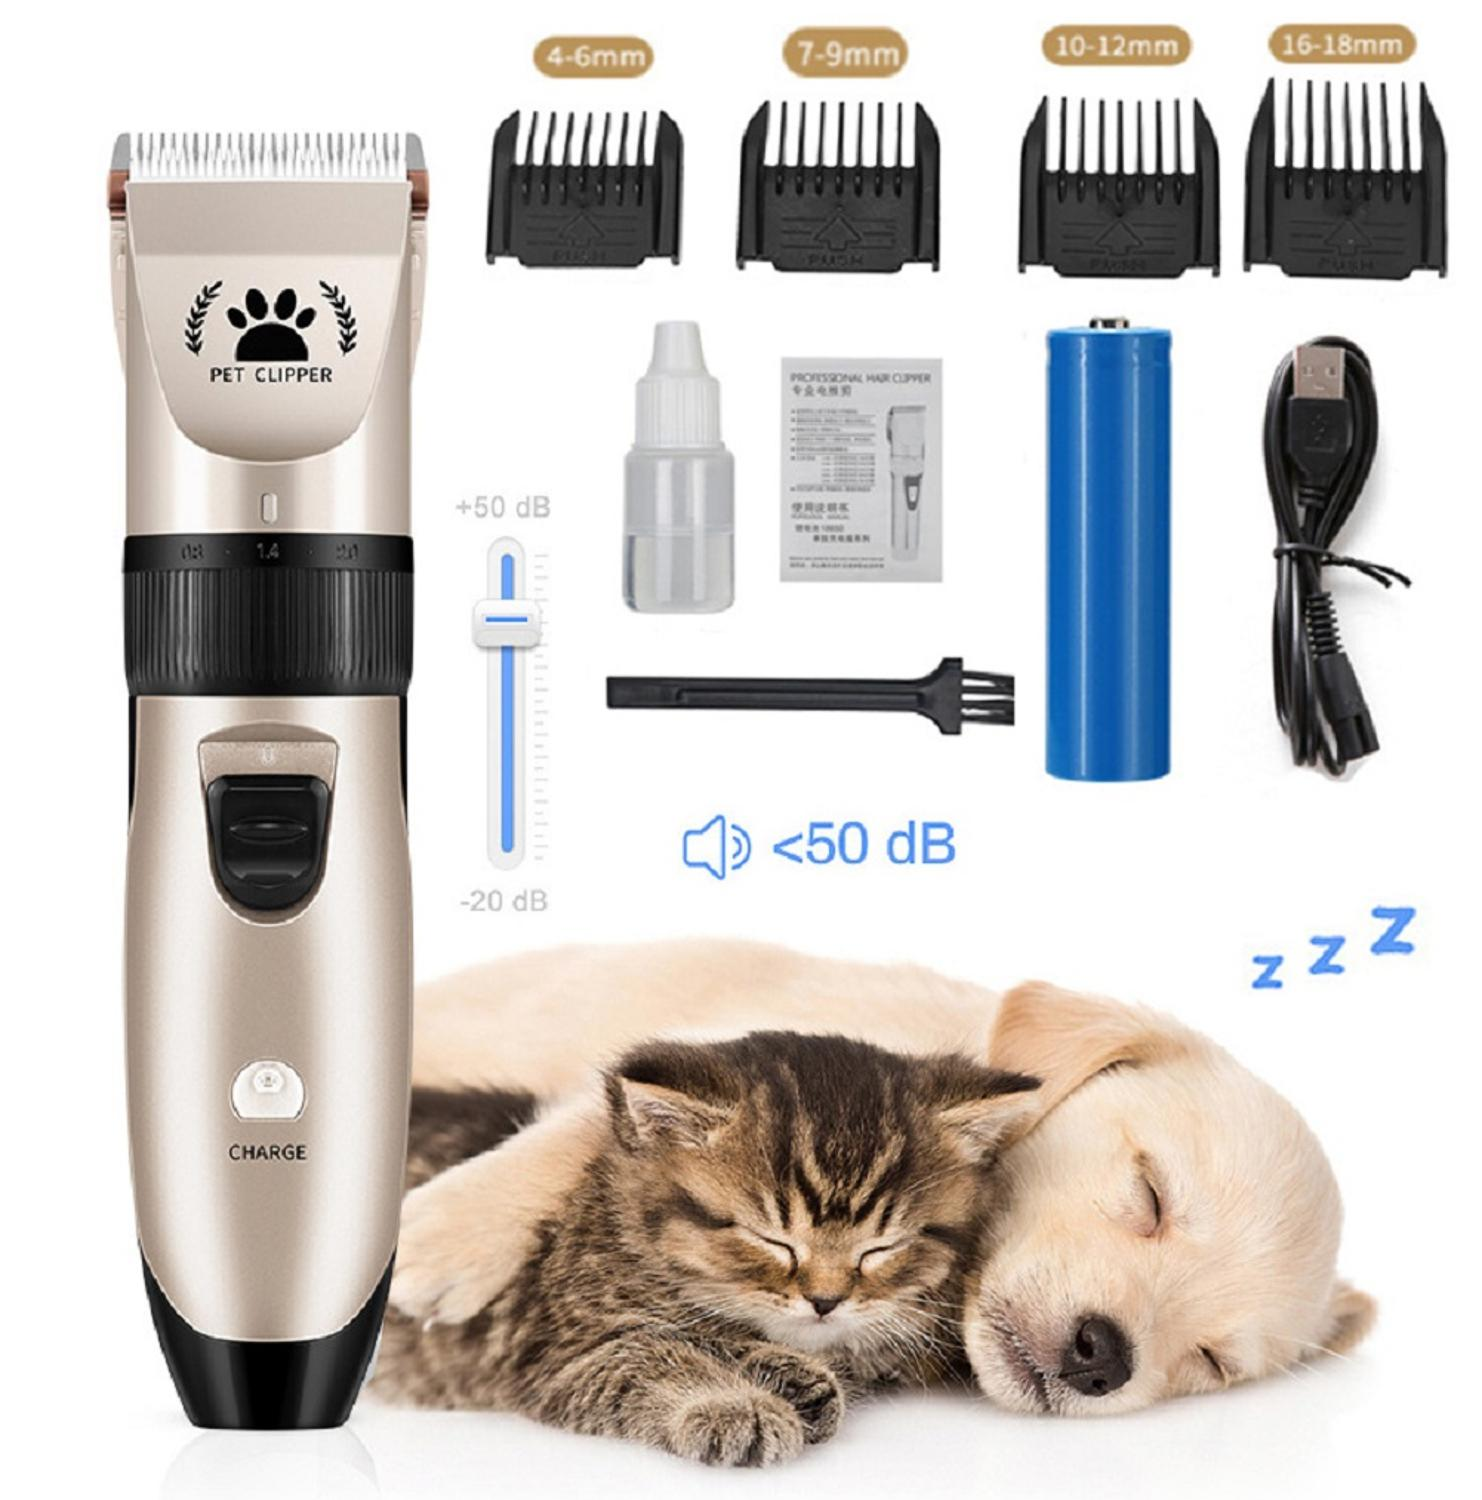 Professional Pet Dog Hair Trimmer Animal Grooming Clippers Cutter Machine Shaver Electric Scissor Clipper Golarka dla zwierzt